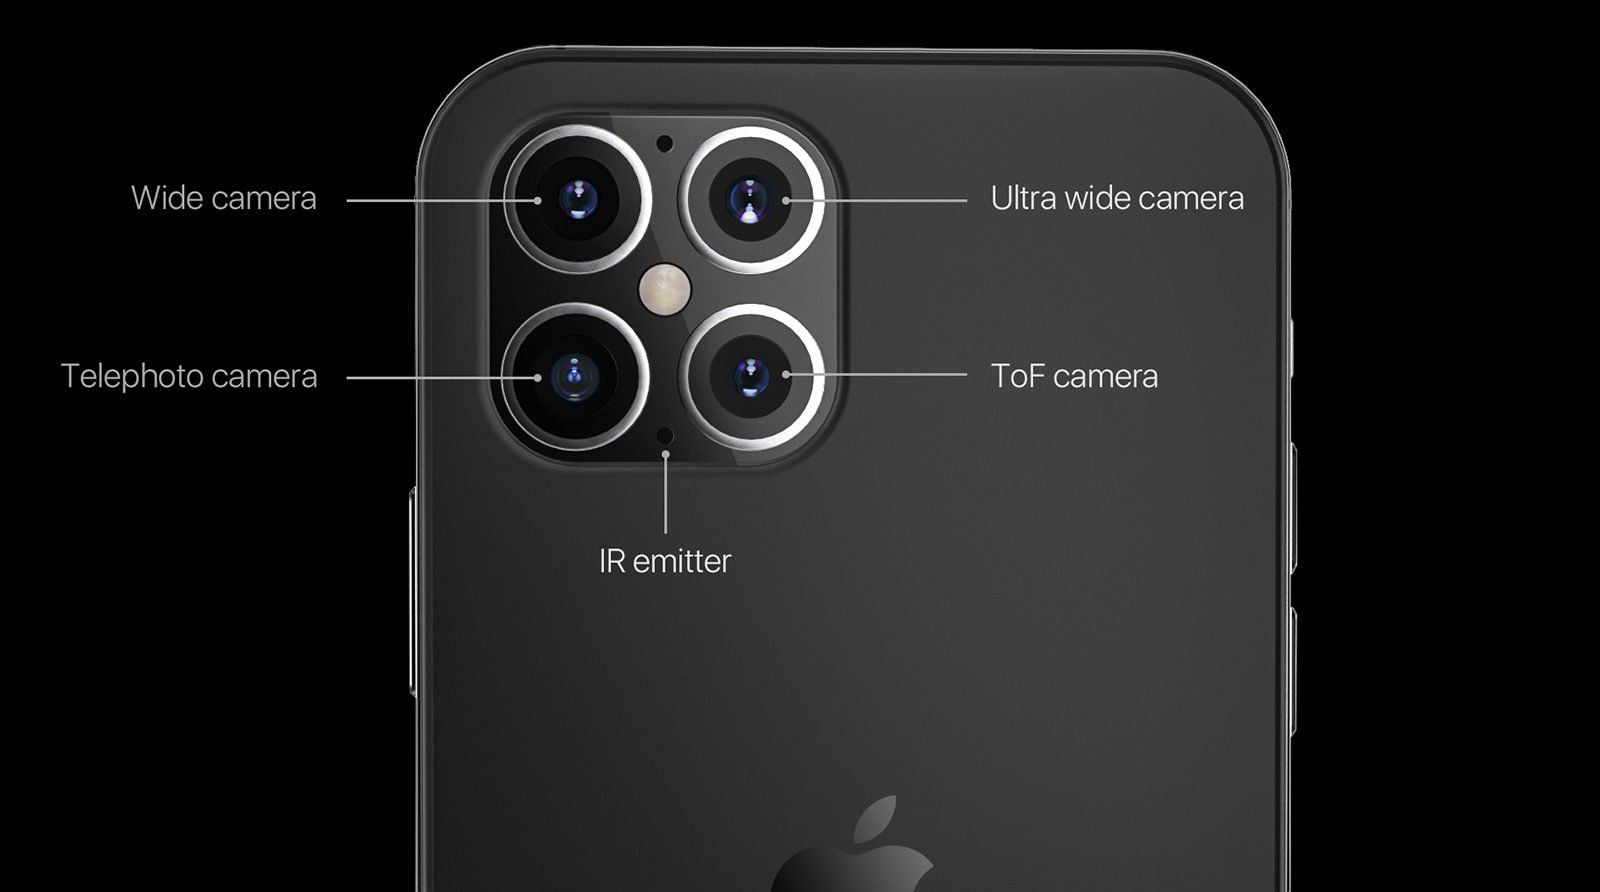 Apple Iphone 12 Design Leaks No Display Notch And Four Lens Rear Camera Rumors Could Be Fake In 2020 Apple Iphone Iphone Apple Smartphone